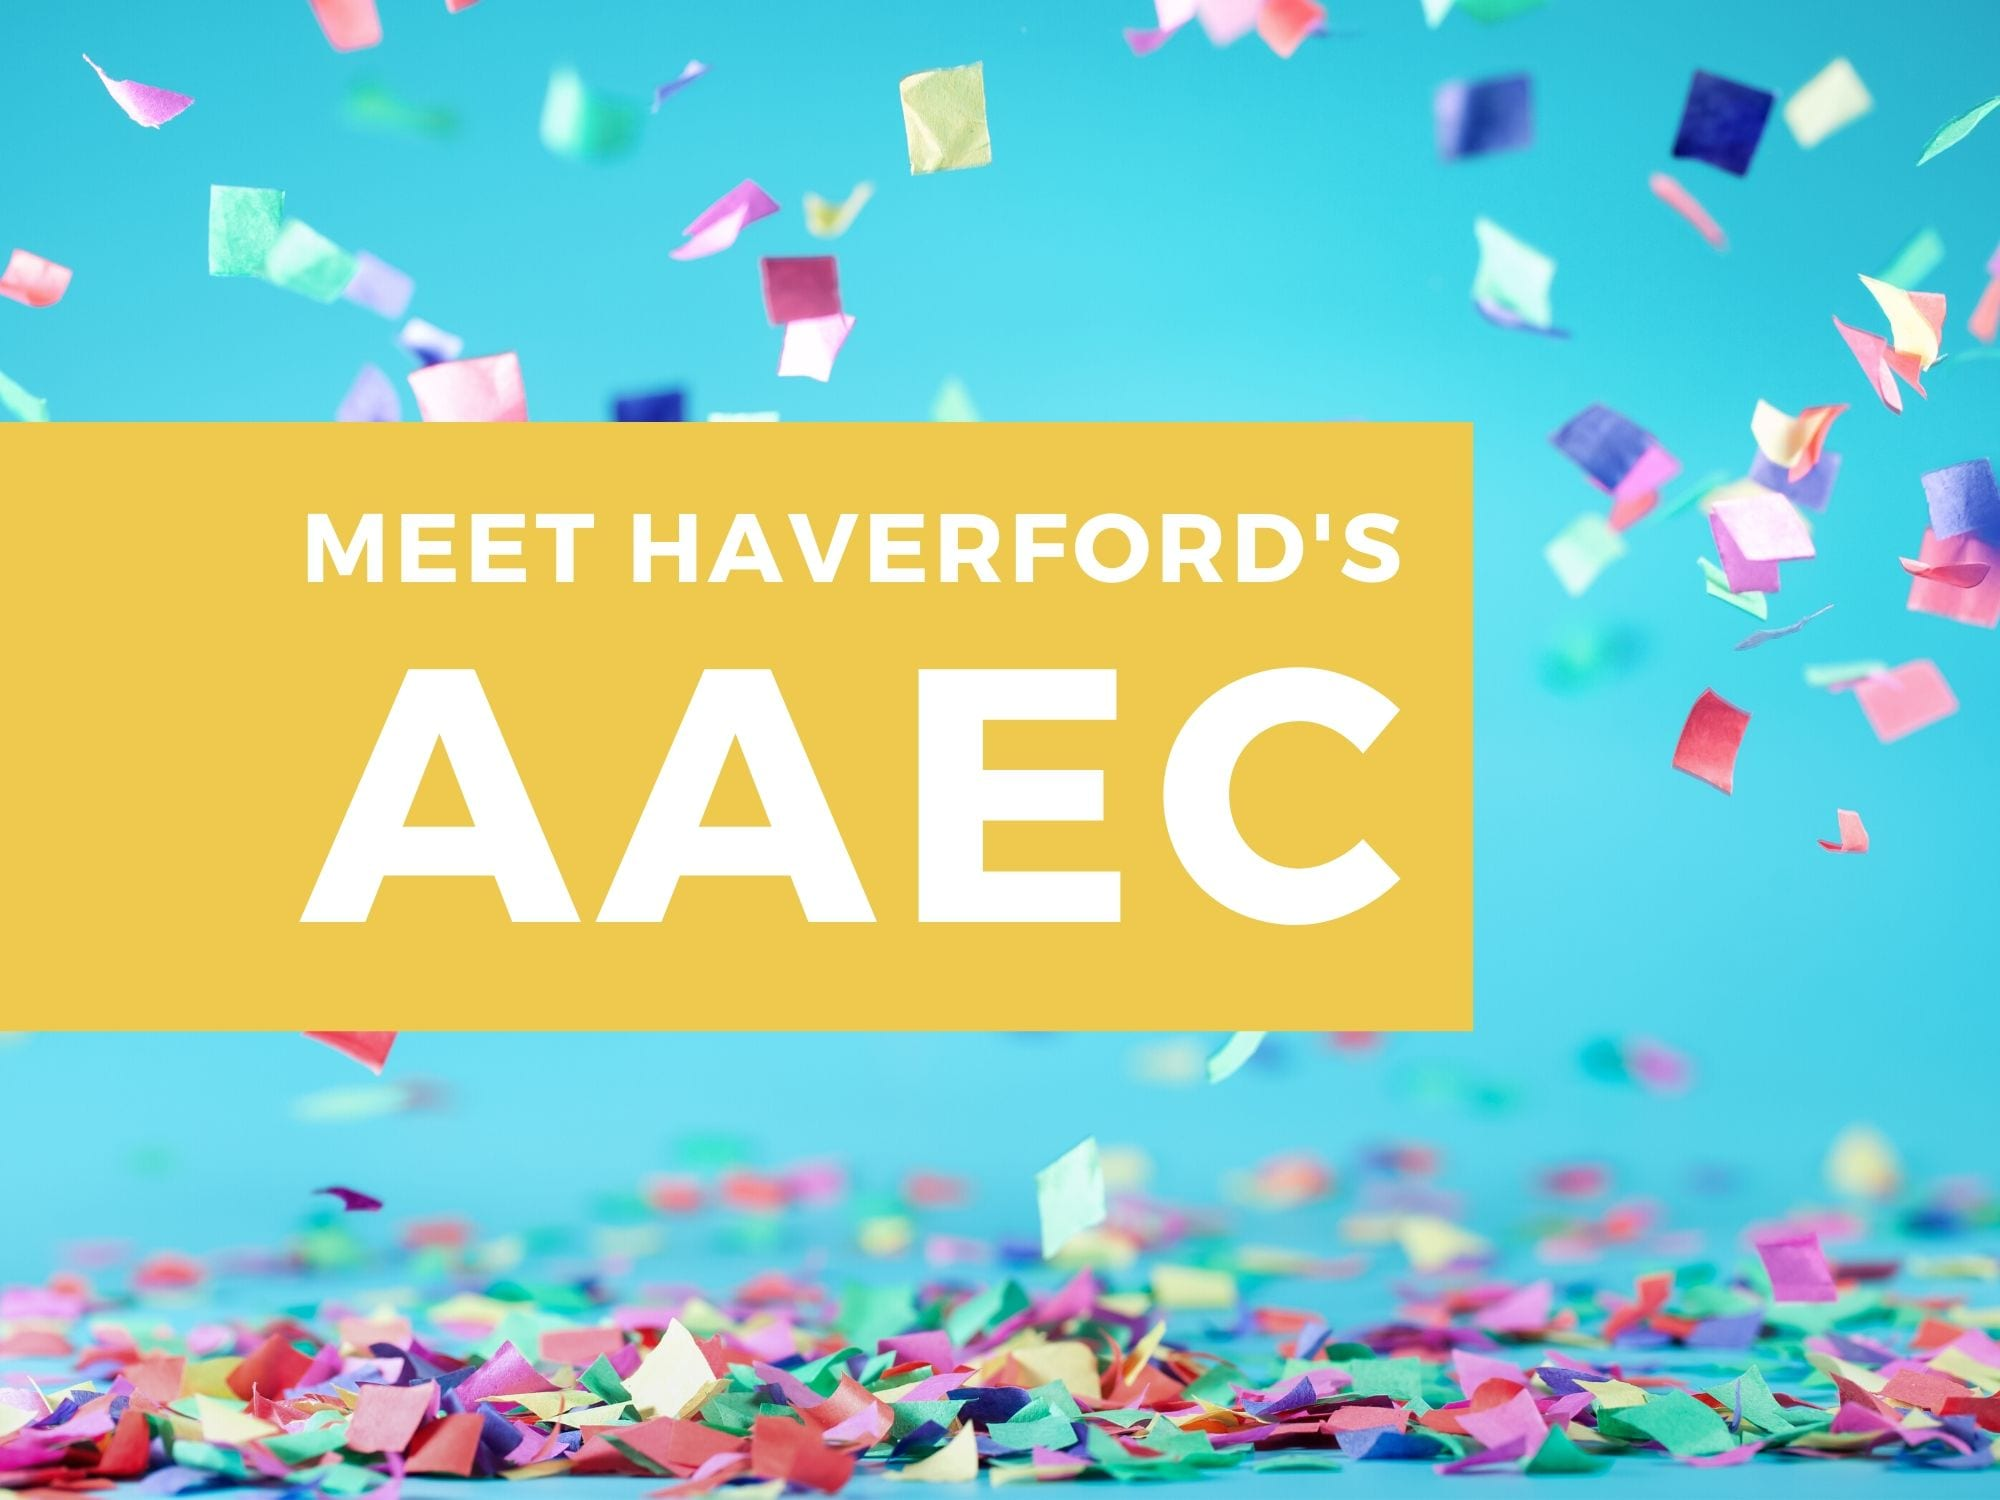 Meet Haverford's AAEC